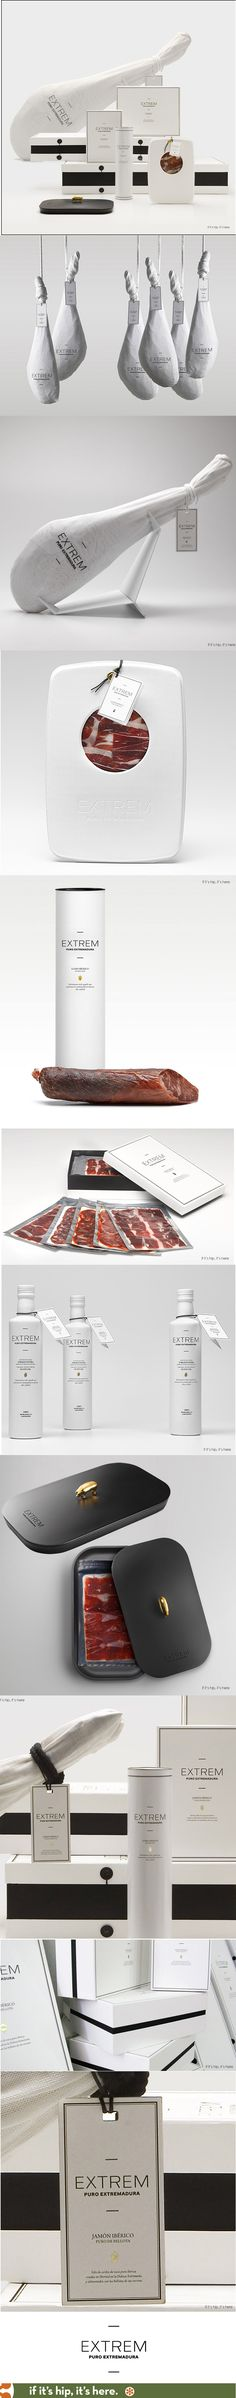 The finest Iberian ham products from Spain's EXTREM brand are packaged and marketed as if it were jewelry.